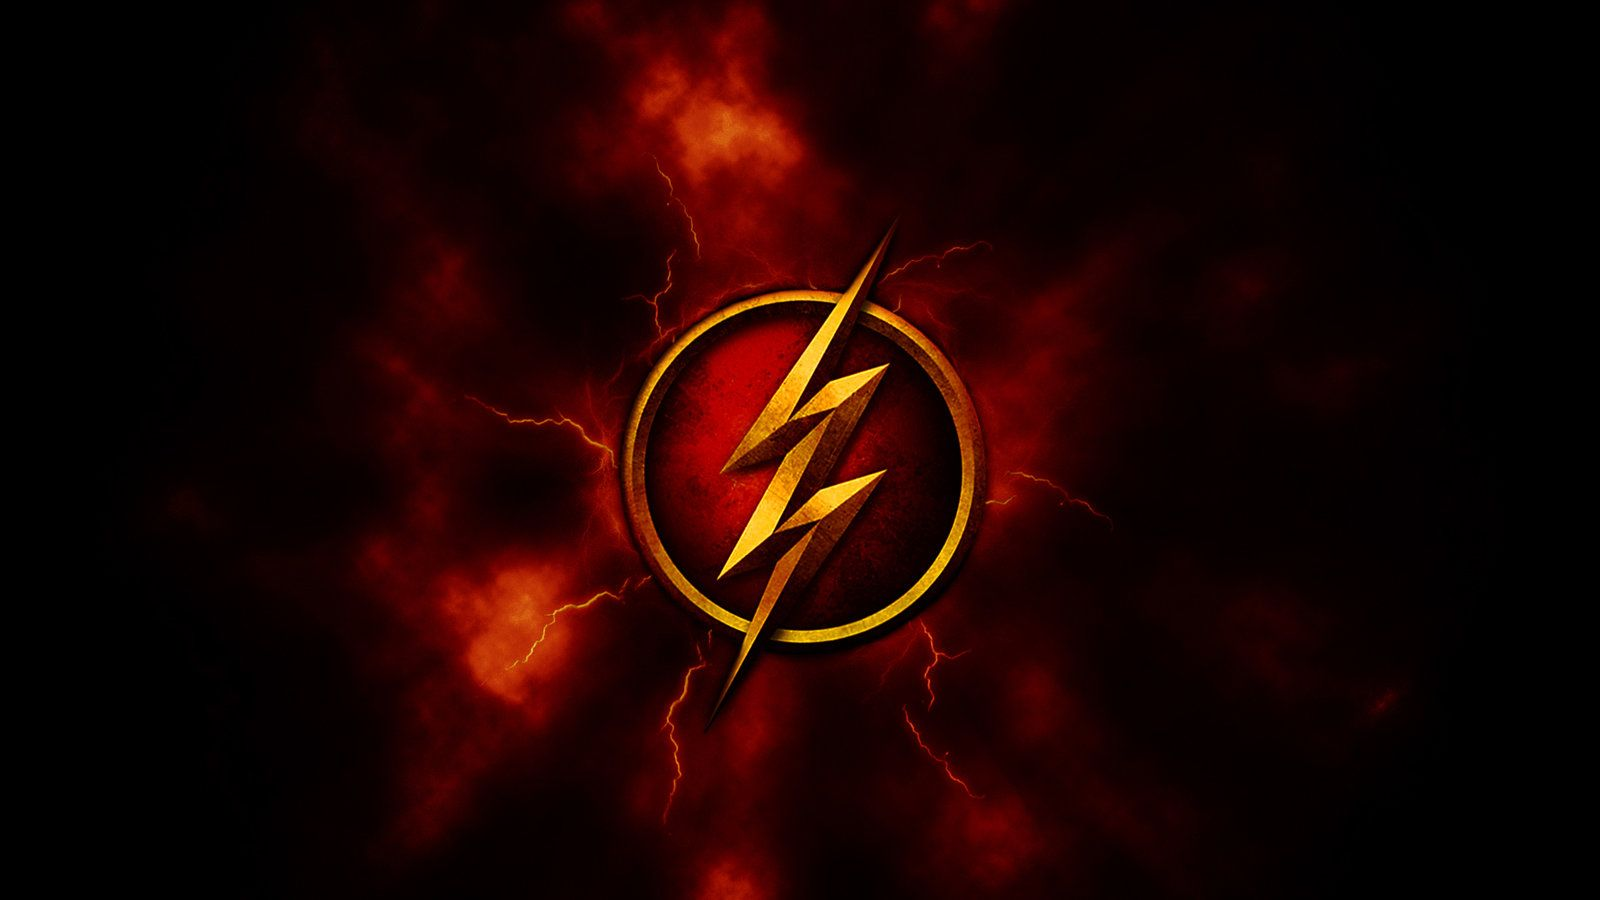 Flash Wallpaper Hd Resolution Is Cool Wallpapers